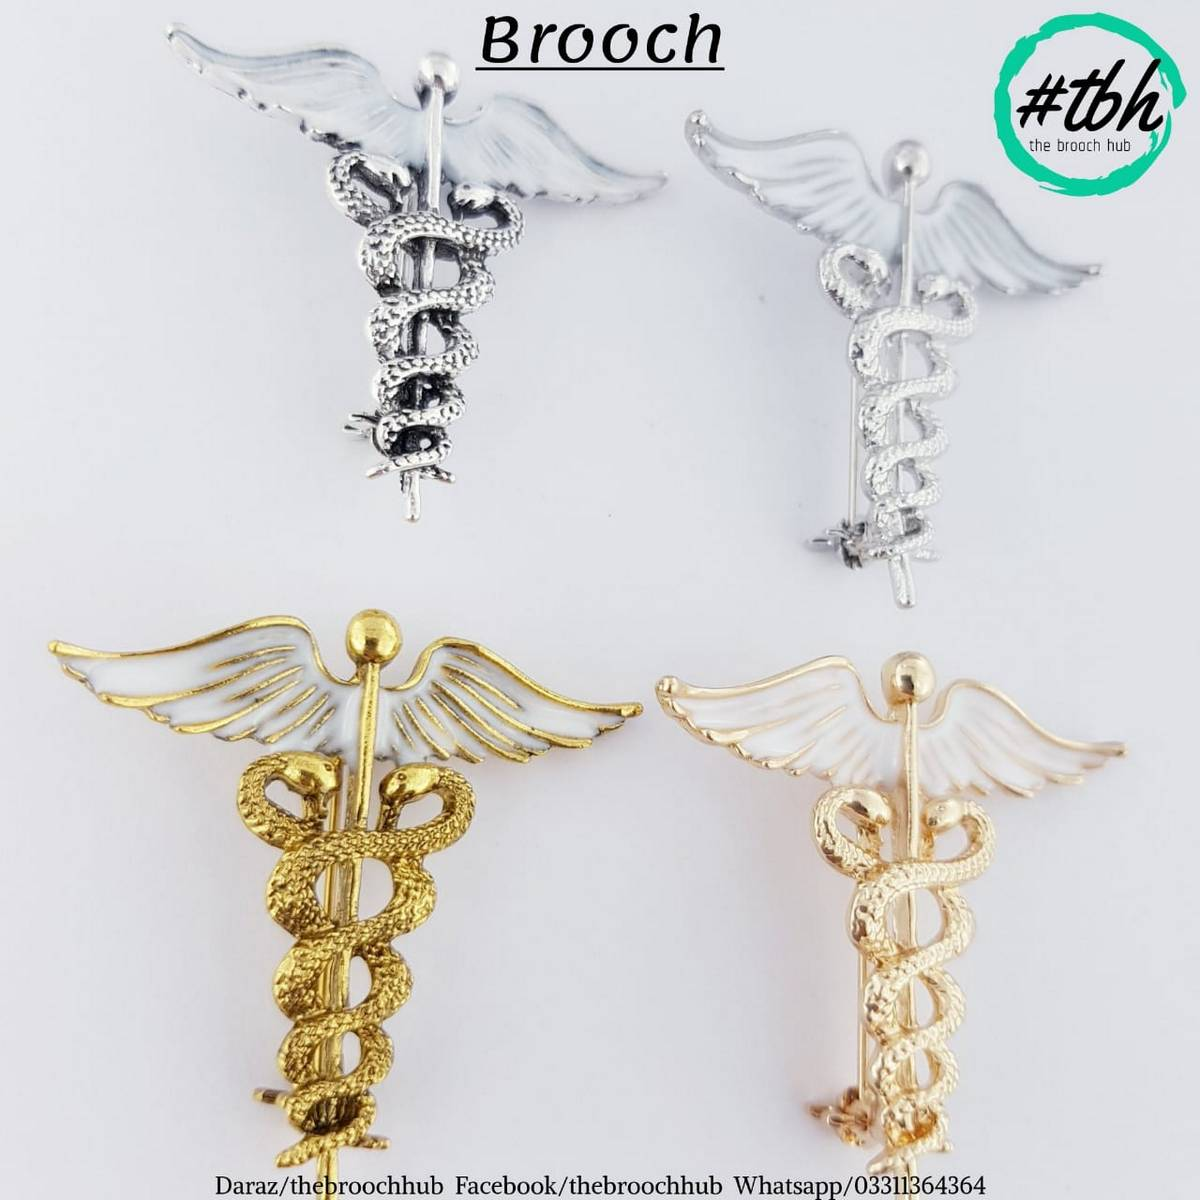 Doctor Caduceus Brooch - New Arrivals - Available in four Shades